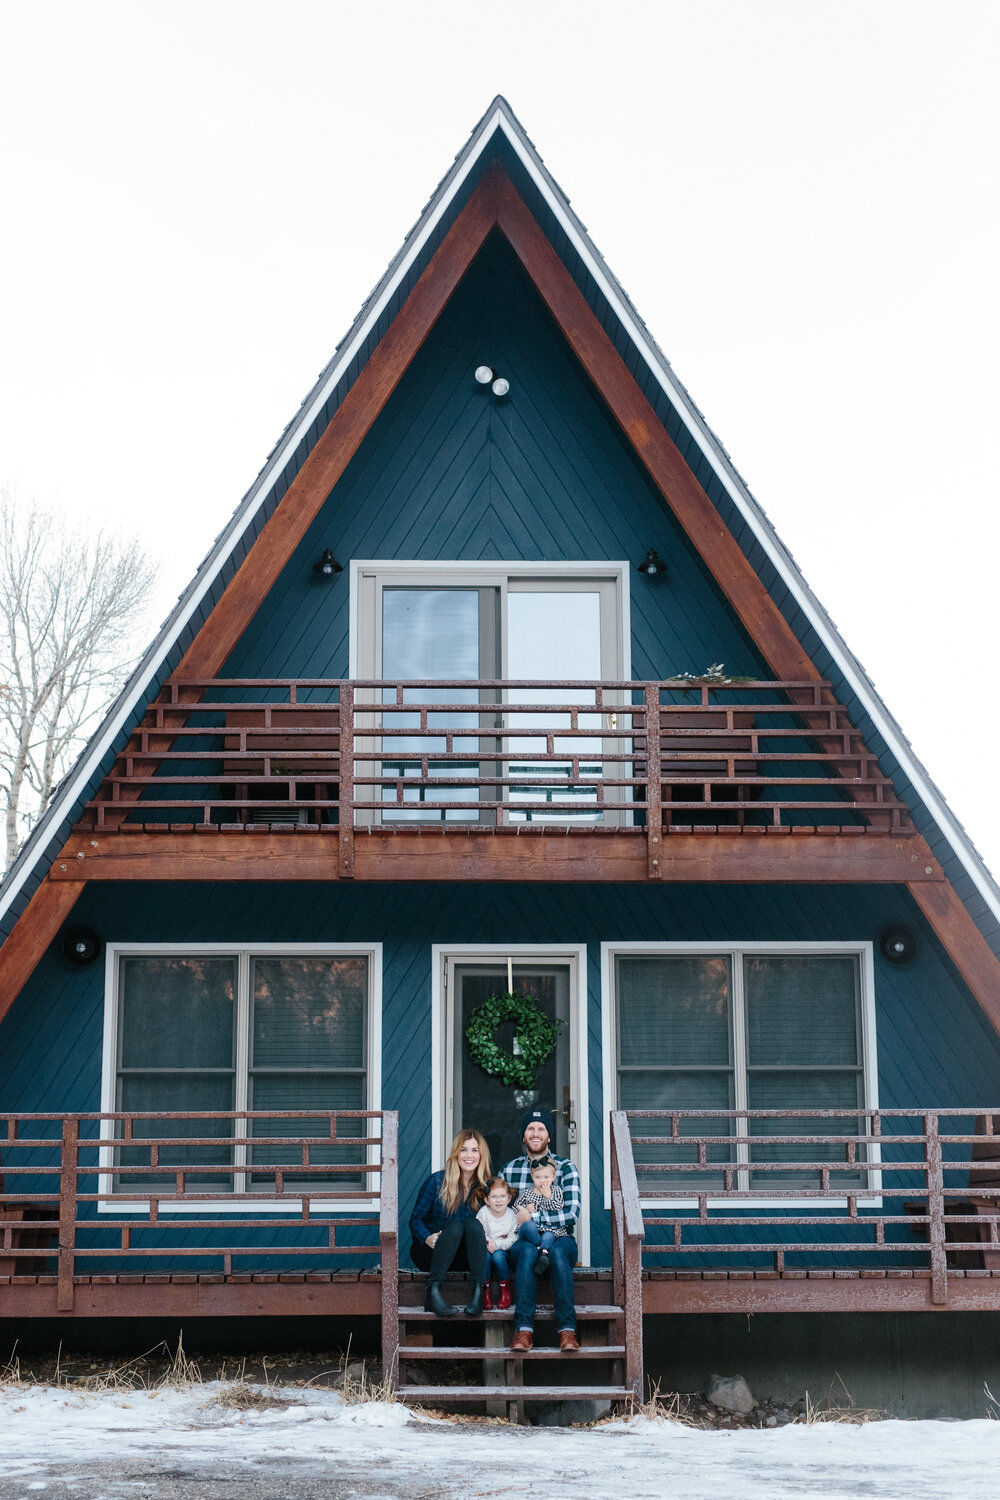 The McGee's at A-Frame Haus.